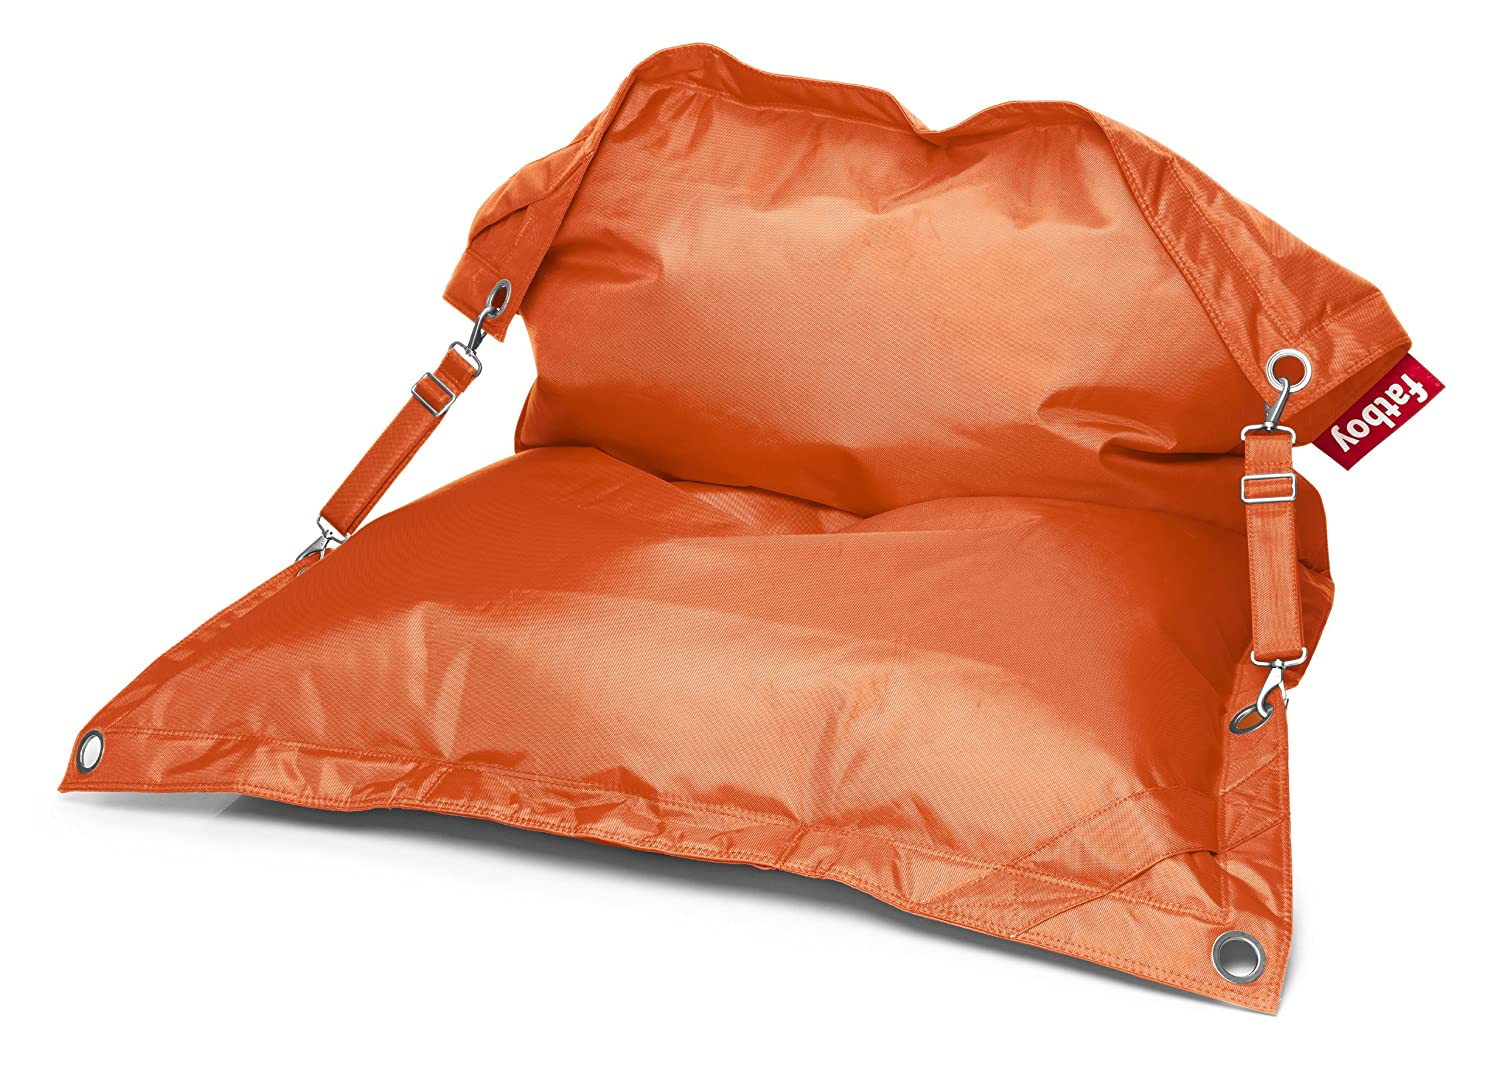 Fatboy 9000602 Outdoor, Farbe orange 140 x 190 cm